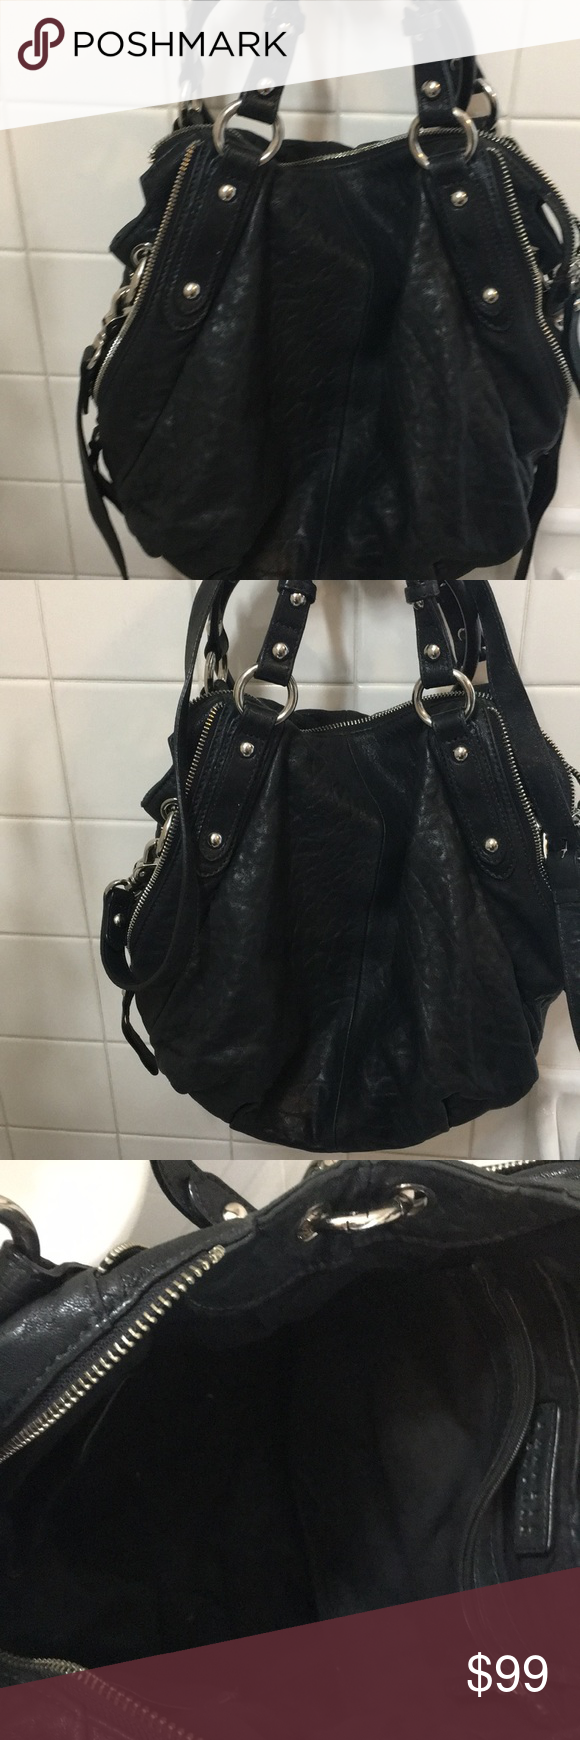 7dbdc72ca1 Barneys New York black leather stud purse Great condition very soft leather  from barneys New York brand Barneys New York Bags Crossbody Bags